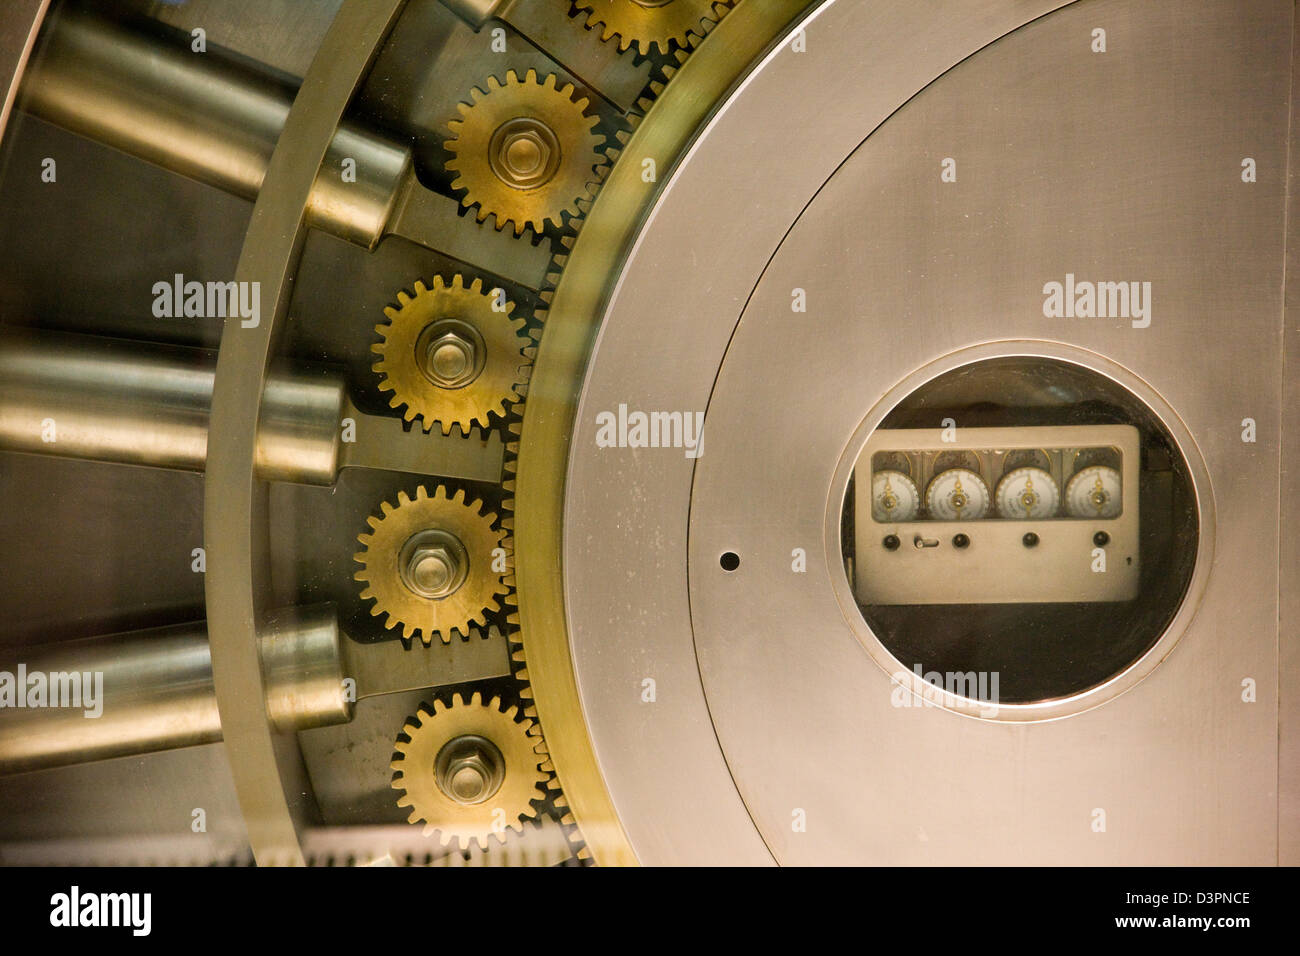 Large bank vault safe in a shop window on Fifth 5th Avenue in New York - Stock Image